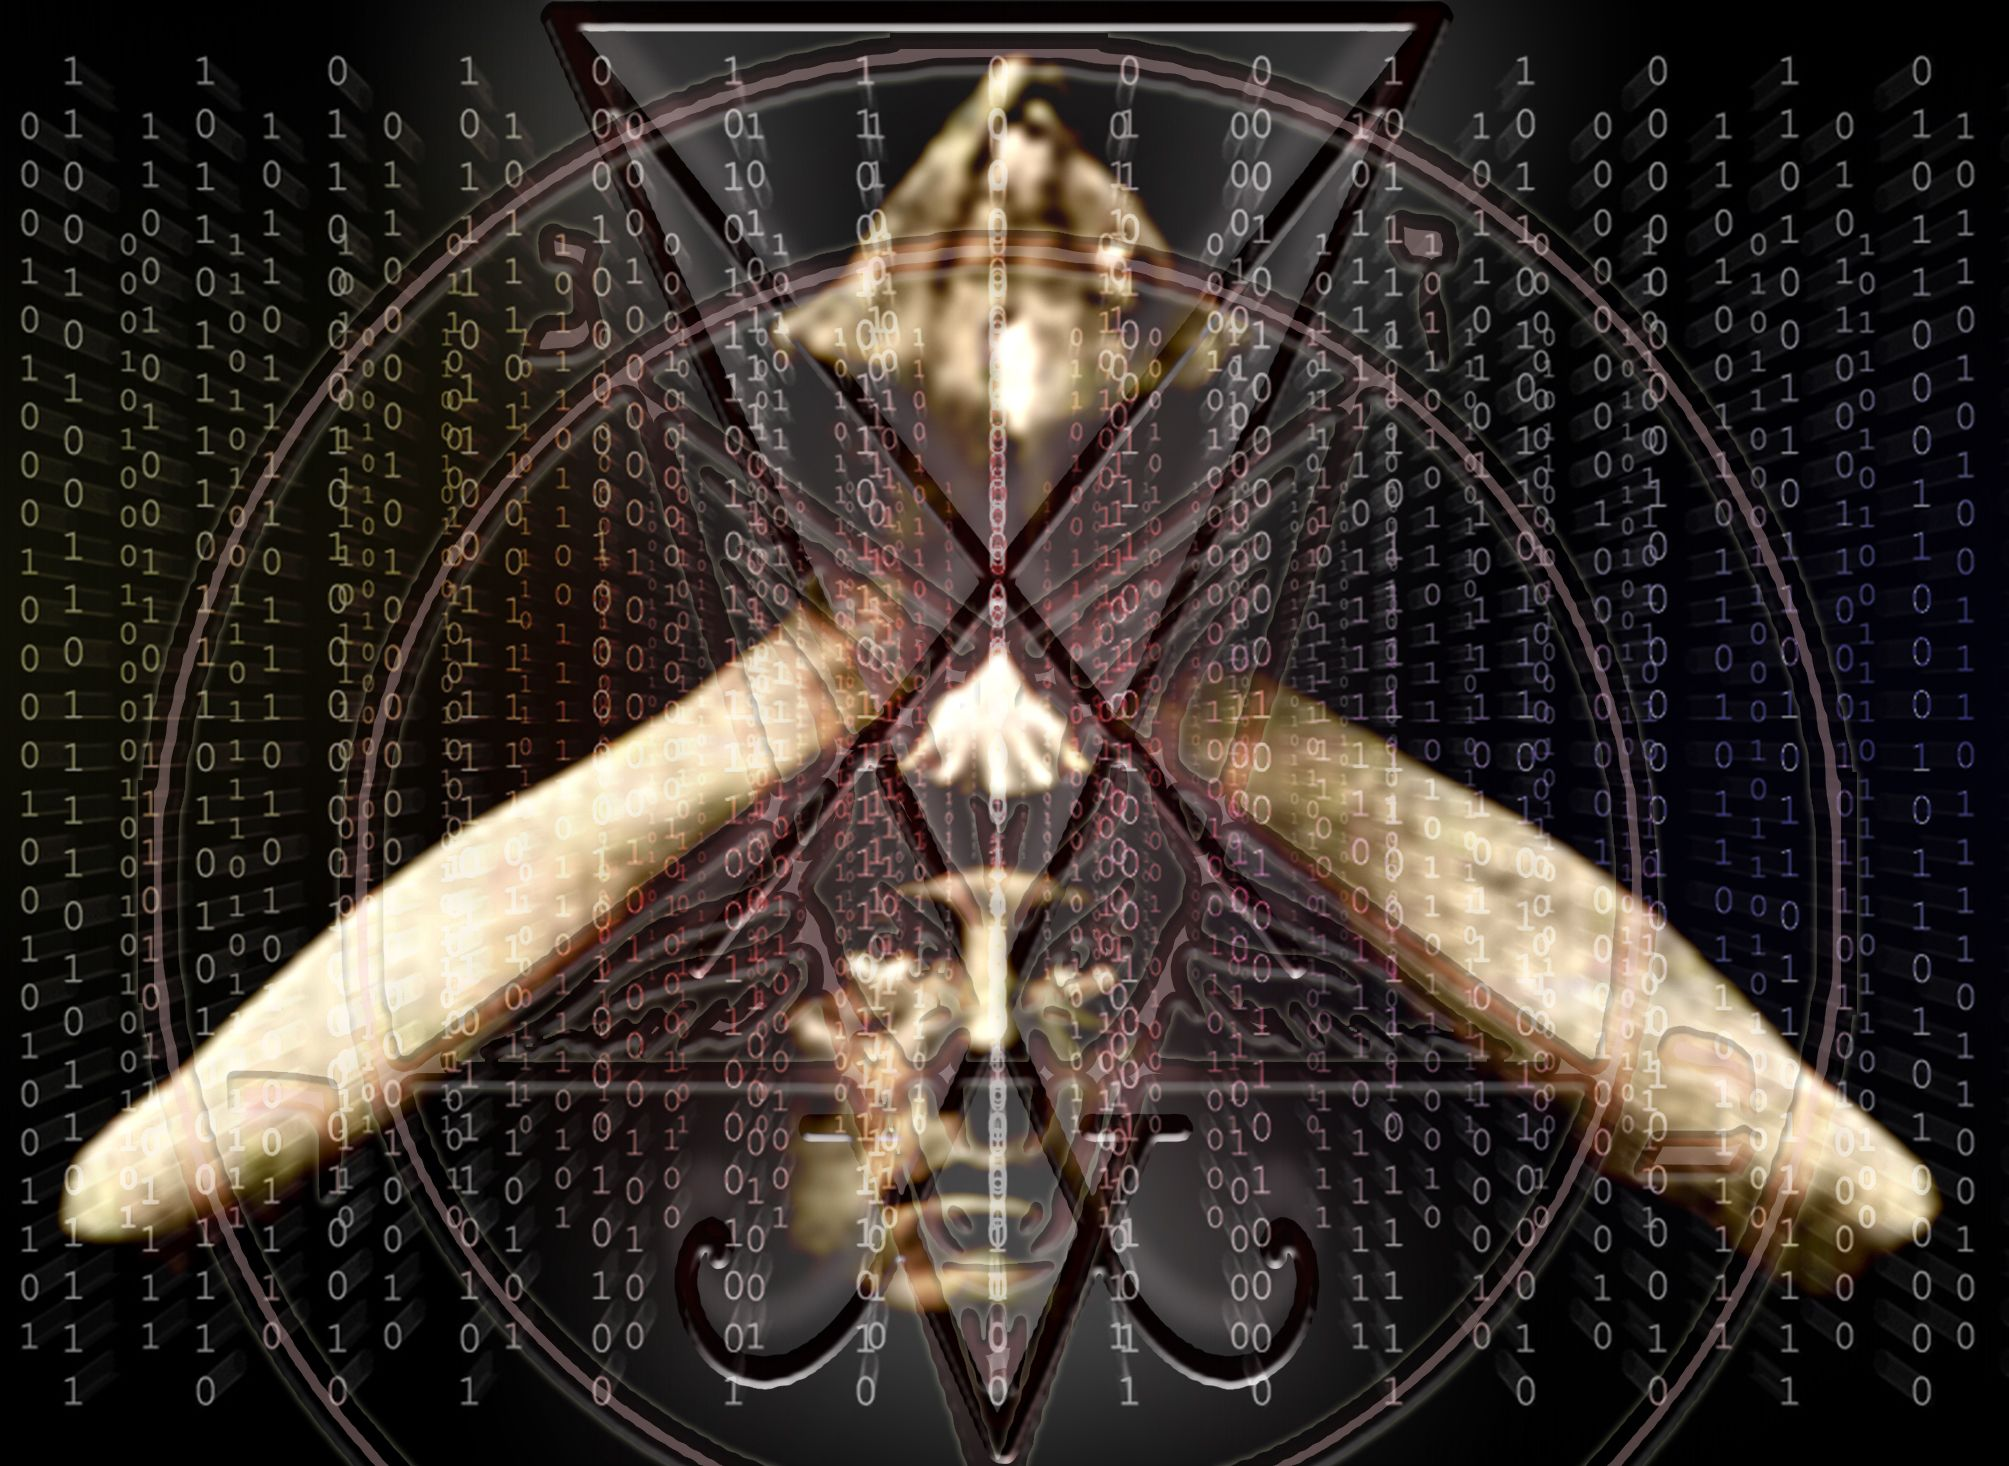 aleister_crowley overlaid with satanic & Matrix imagery